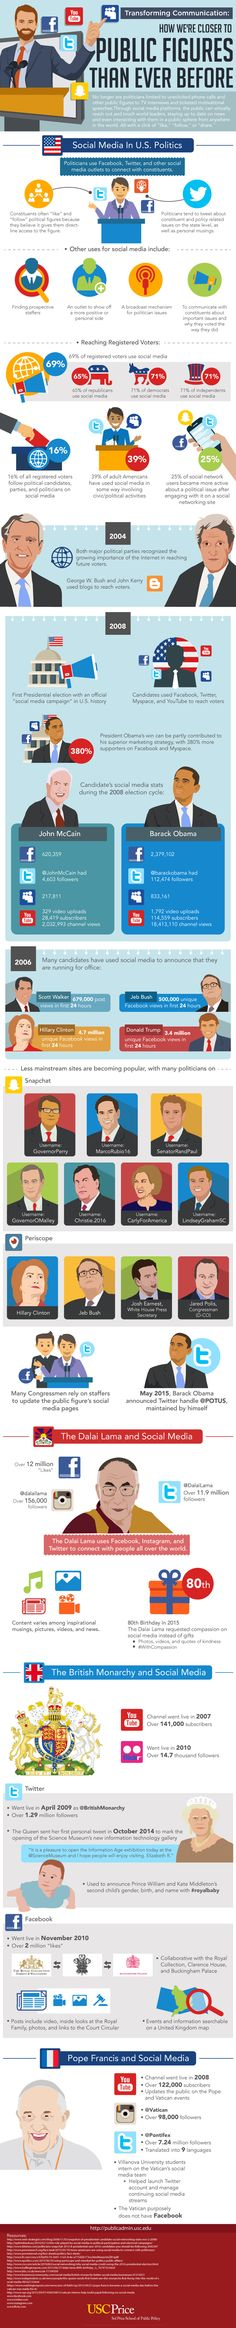 How We're Closer to Public Figures Than Even Before #Infographic #Politics #SocialMedia